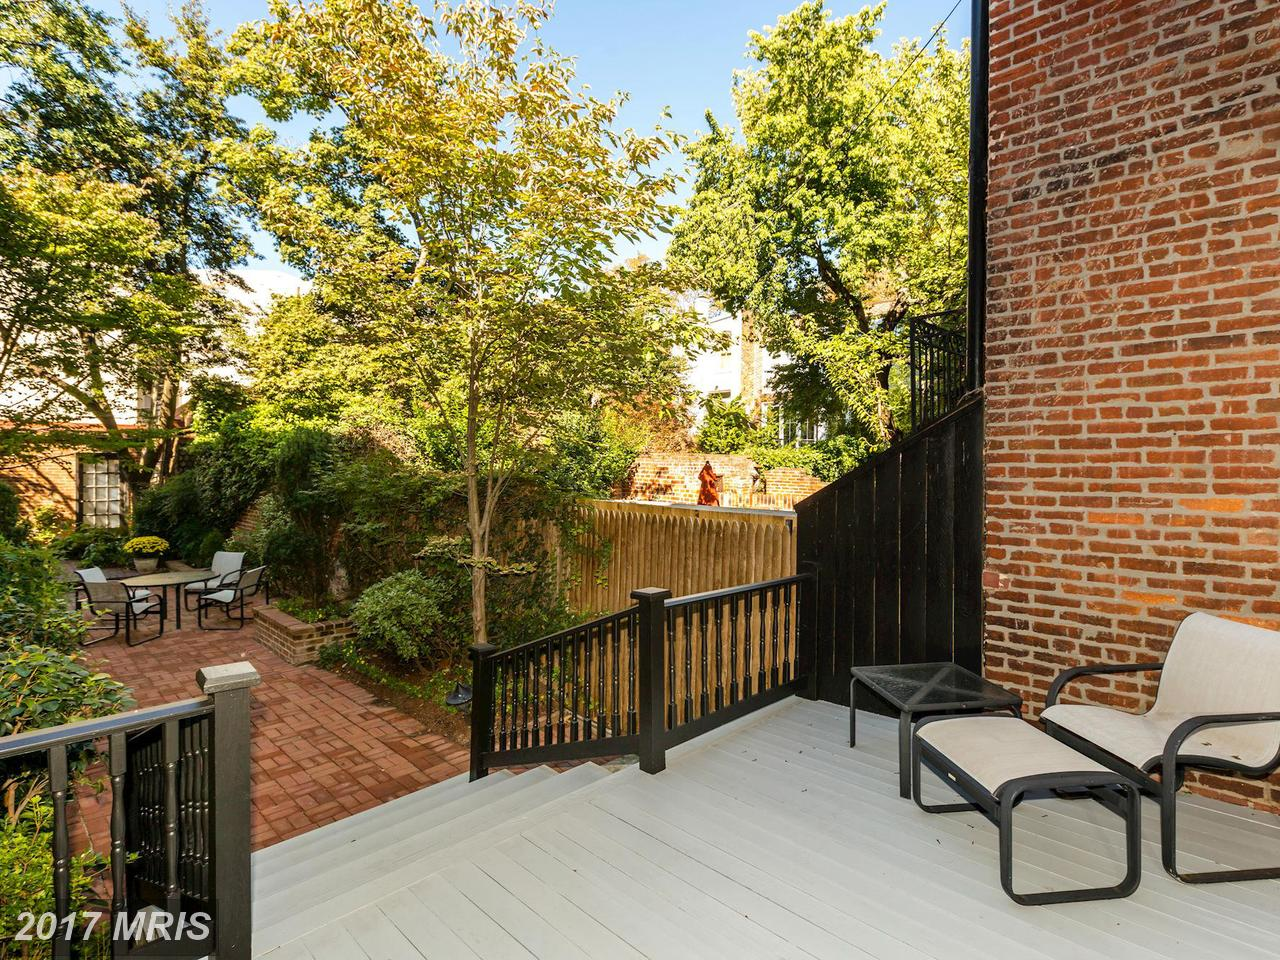 Additional photo for property listing at Federal, Semi-Detached - WASHINGTON, DC 1308 29TH ST NW Washington, 哥倫比亞特區,20007 美國